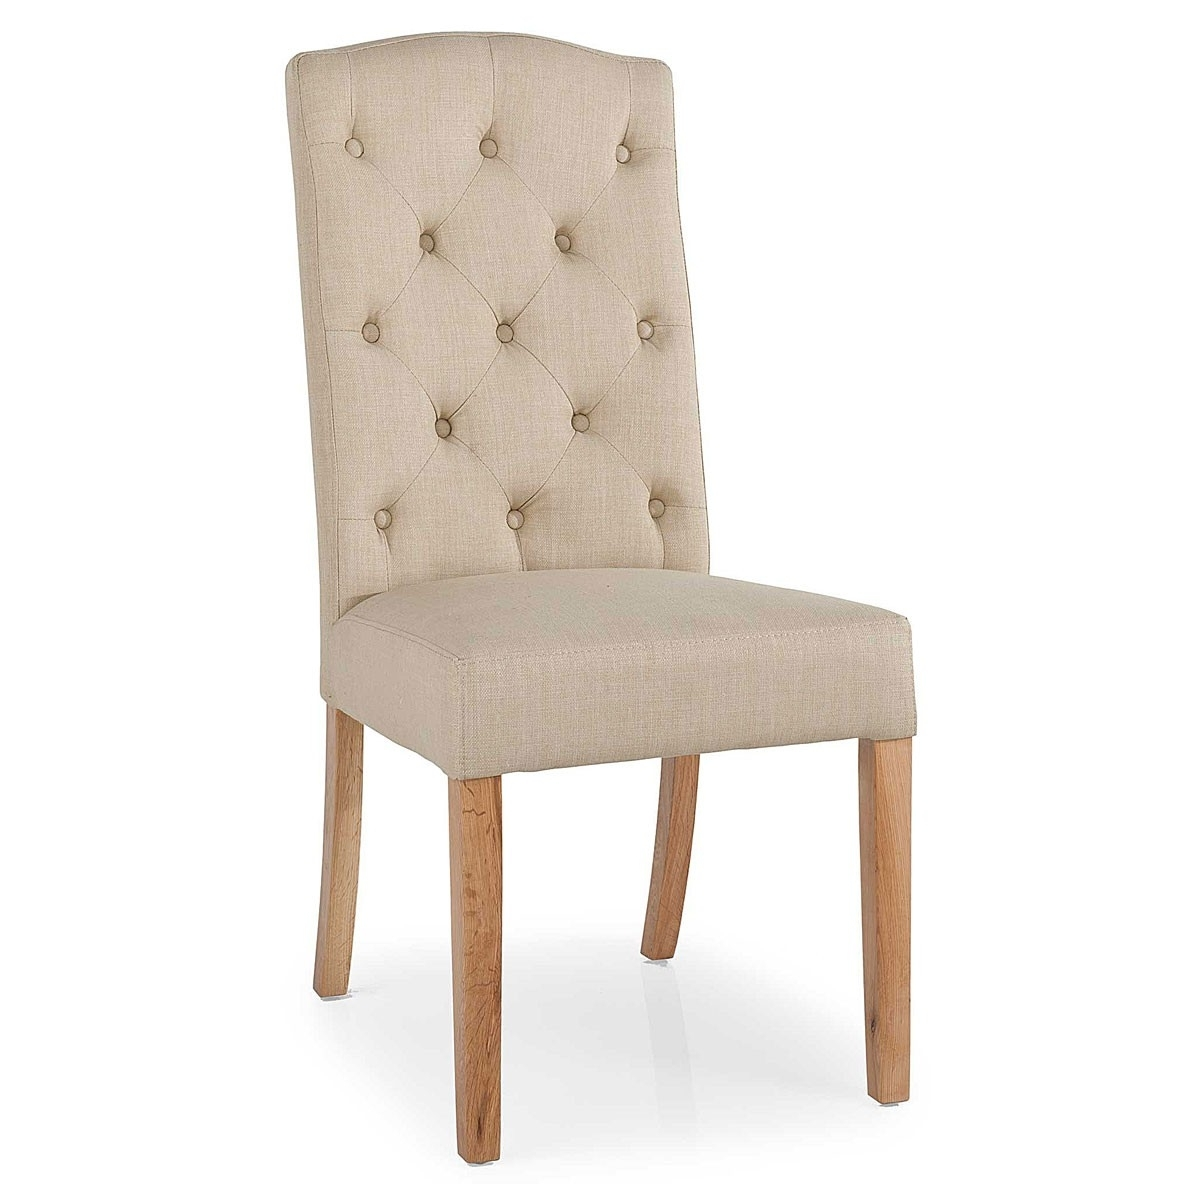 Upholstered French Style Dining Chairs With Regard To Most Up To Date Button Back Dining Chairs (View 24 of 25)